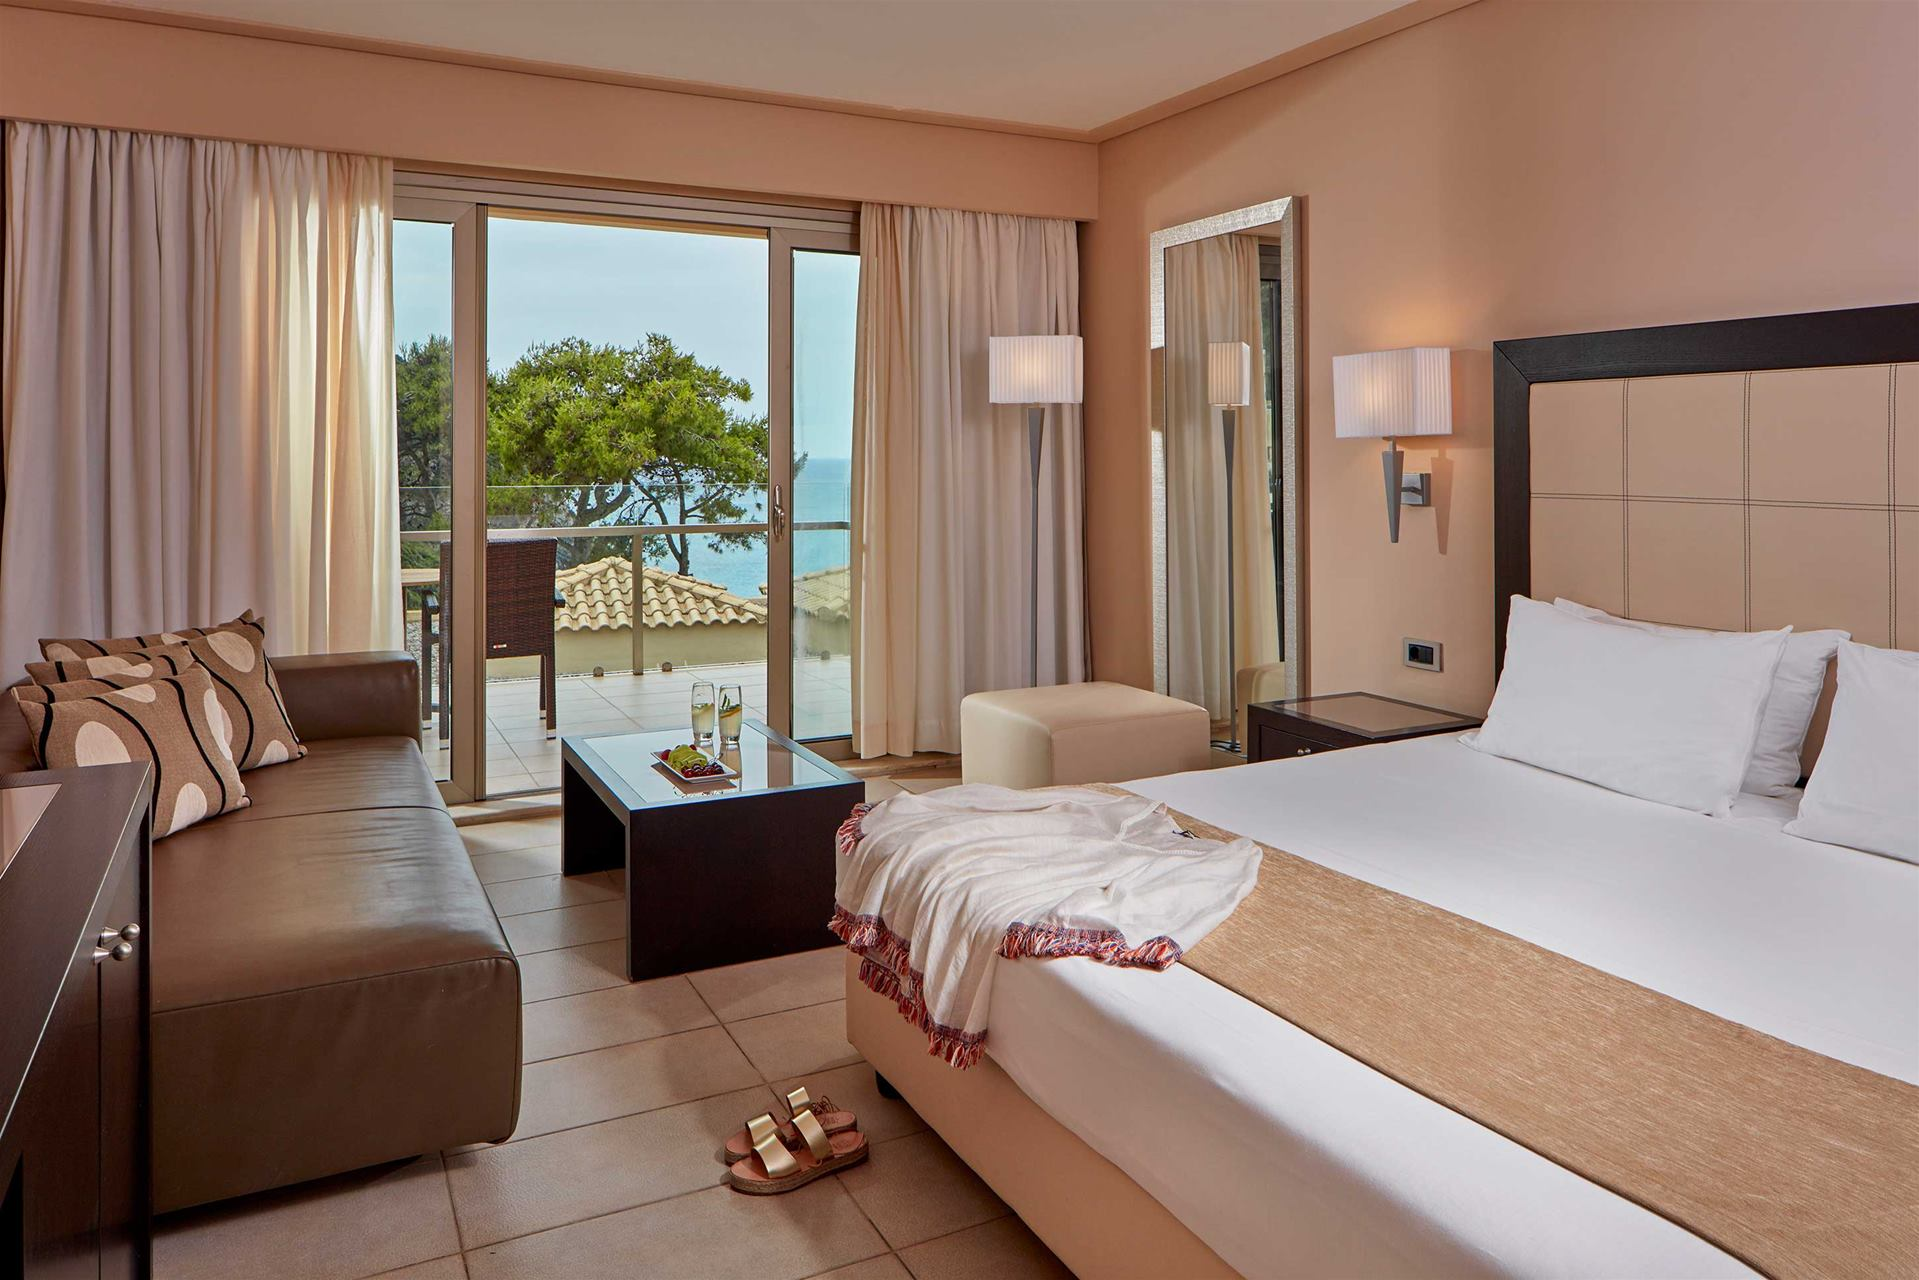 Atlantica Grand Mediterraneo Resort&Spa